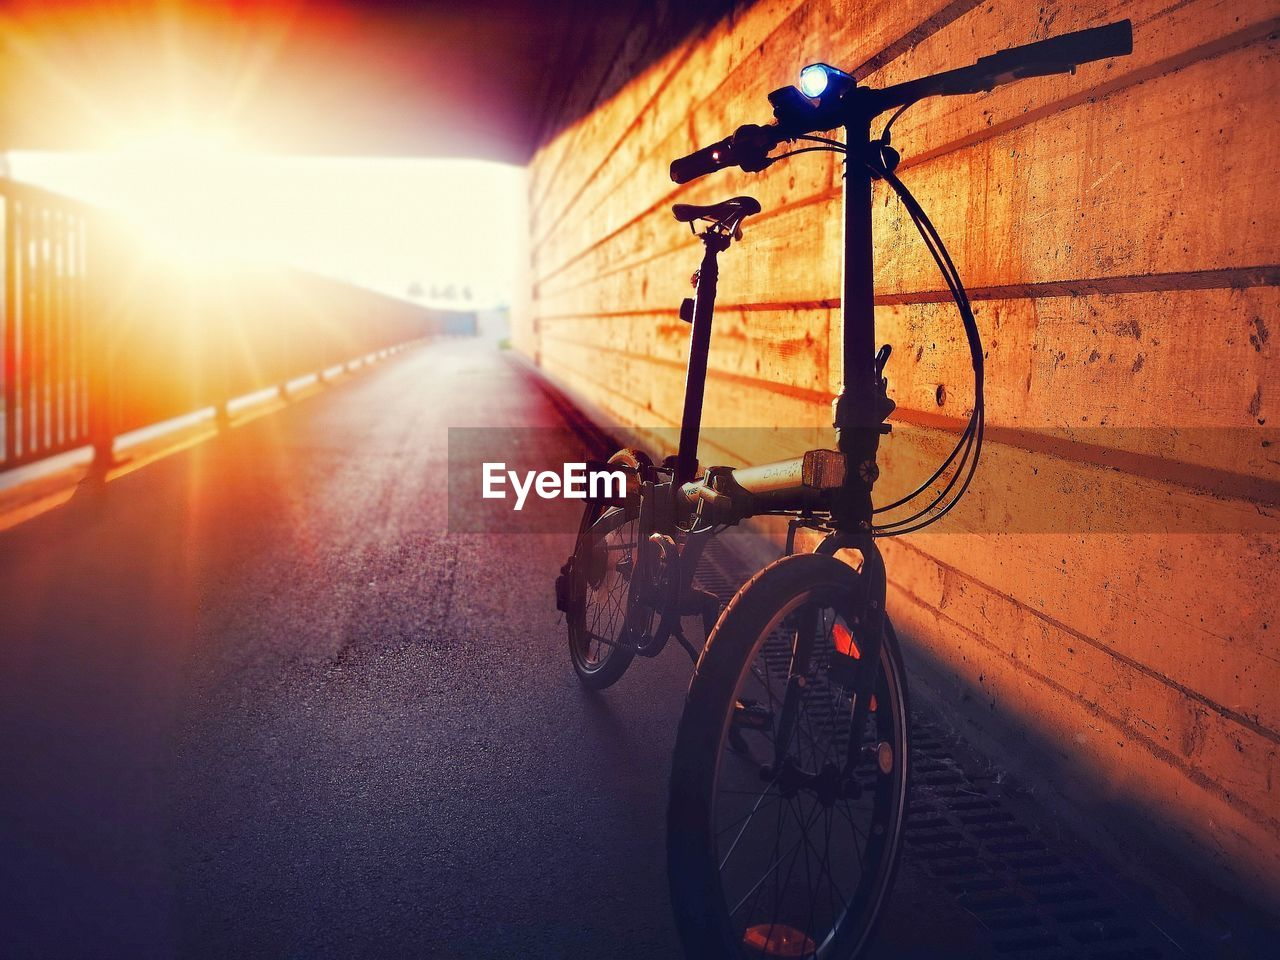 BICYCLE ON STREET IN CITY AGAINST SKY DURING SUNSET